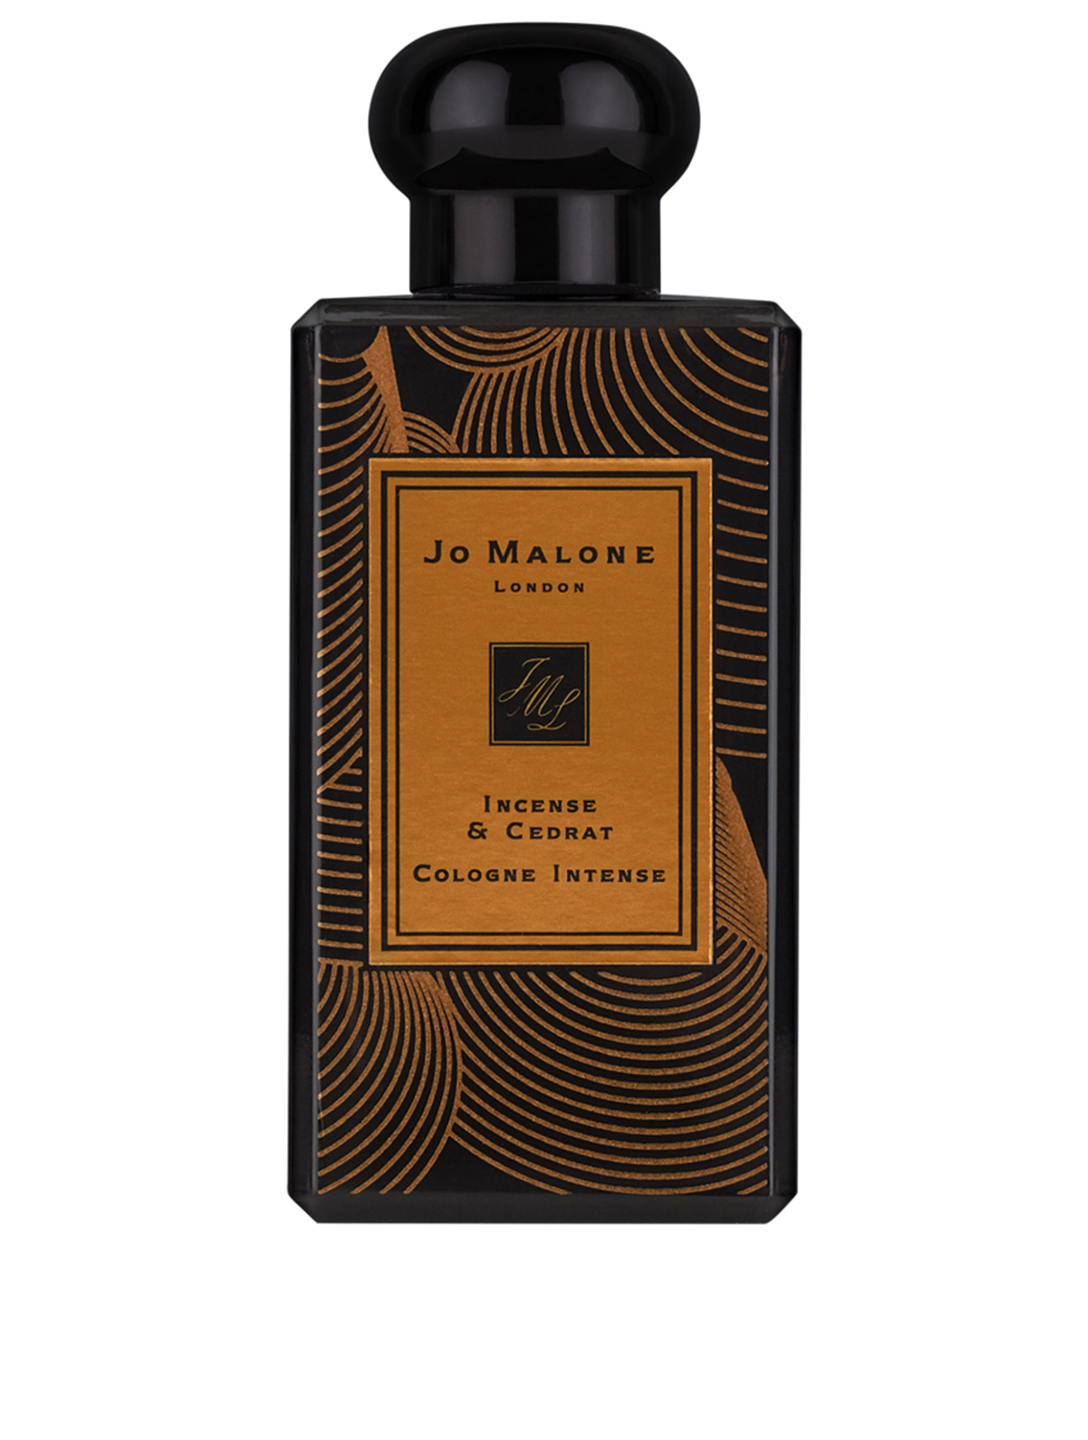 JO MALONE LONDON Incense & Cedrat Cologne Intense Beauty